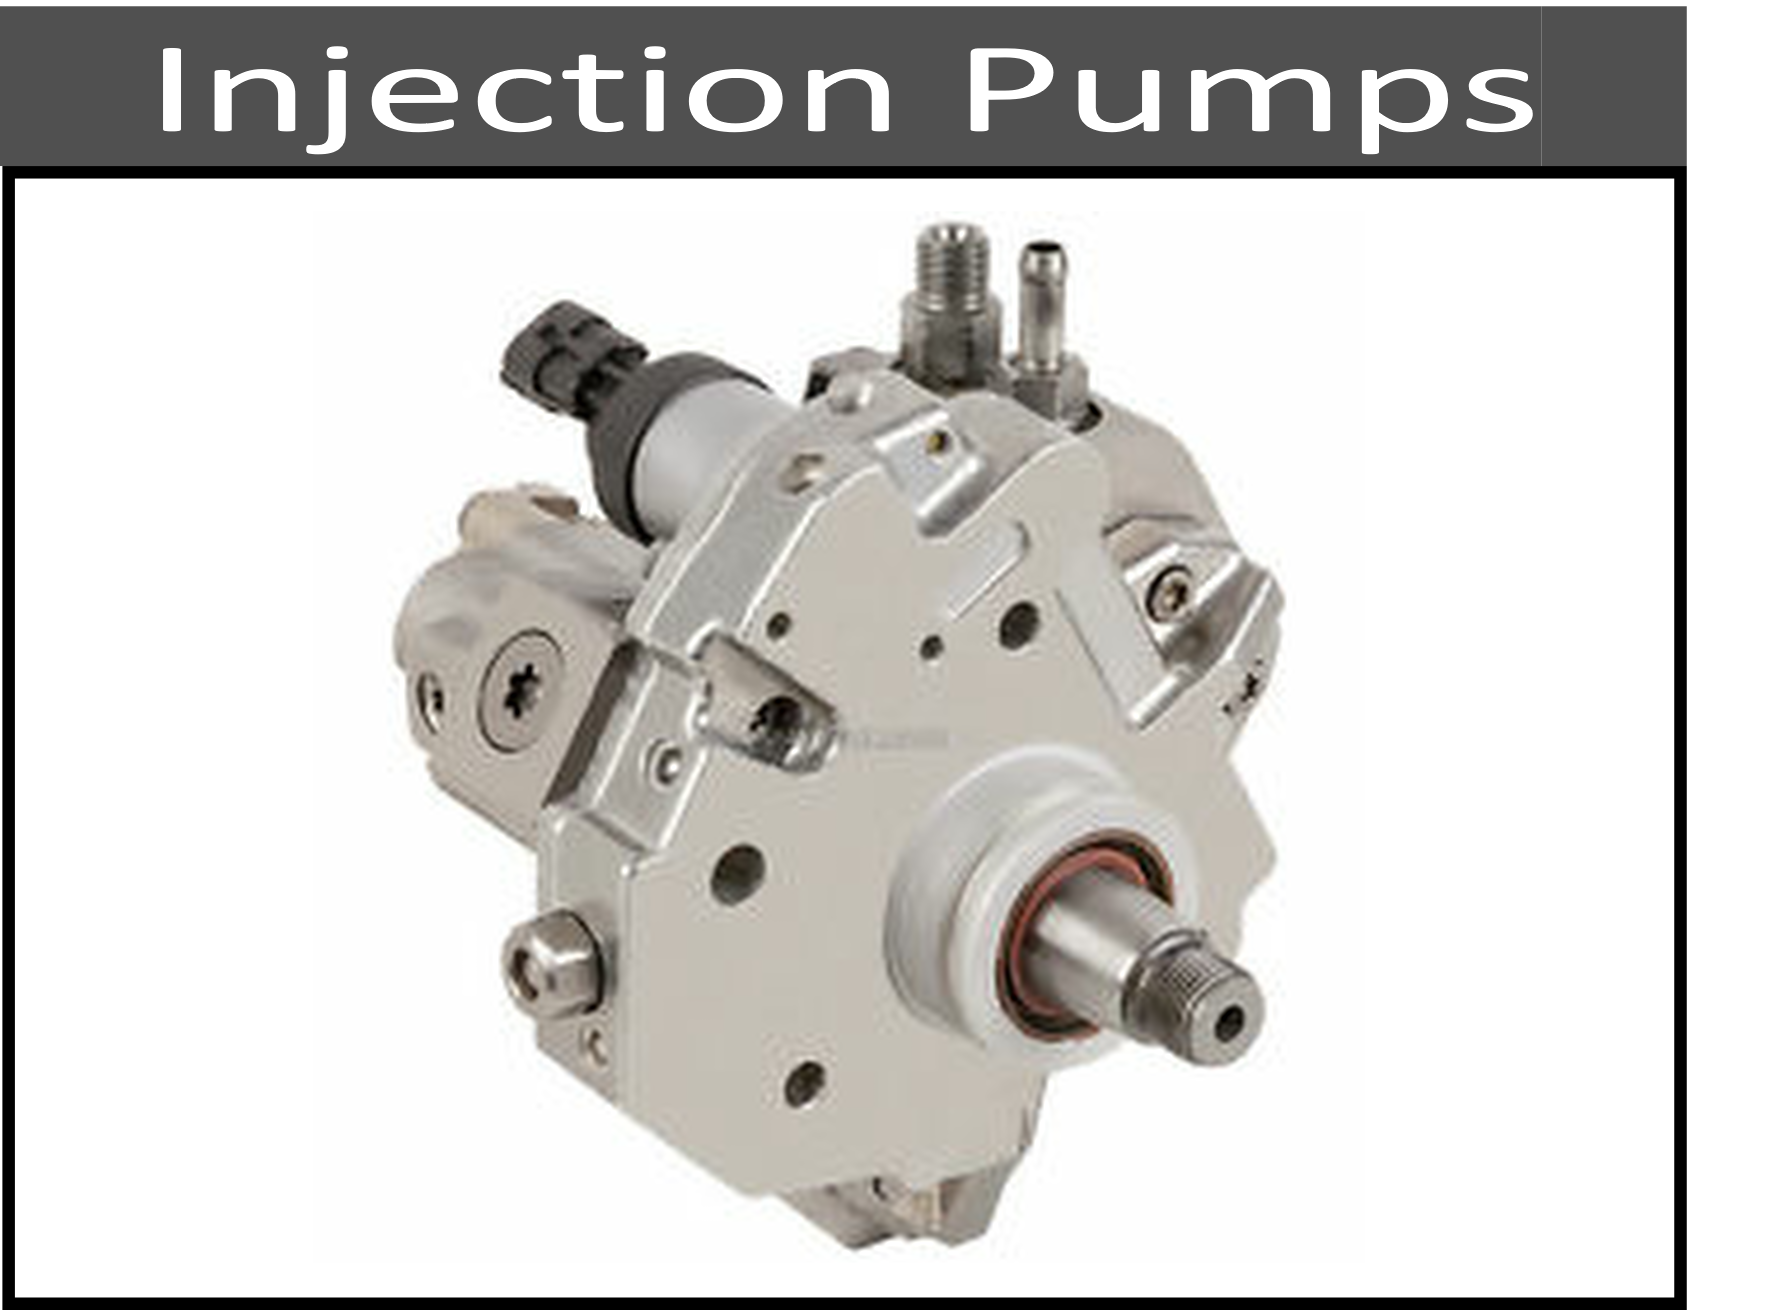 Stock and Upgraded Fuel Injection Pumps